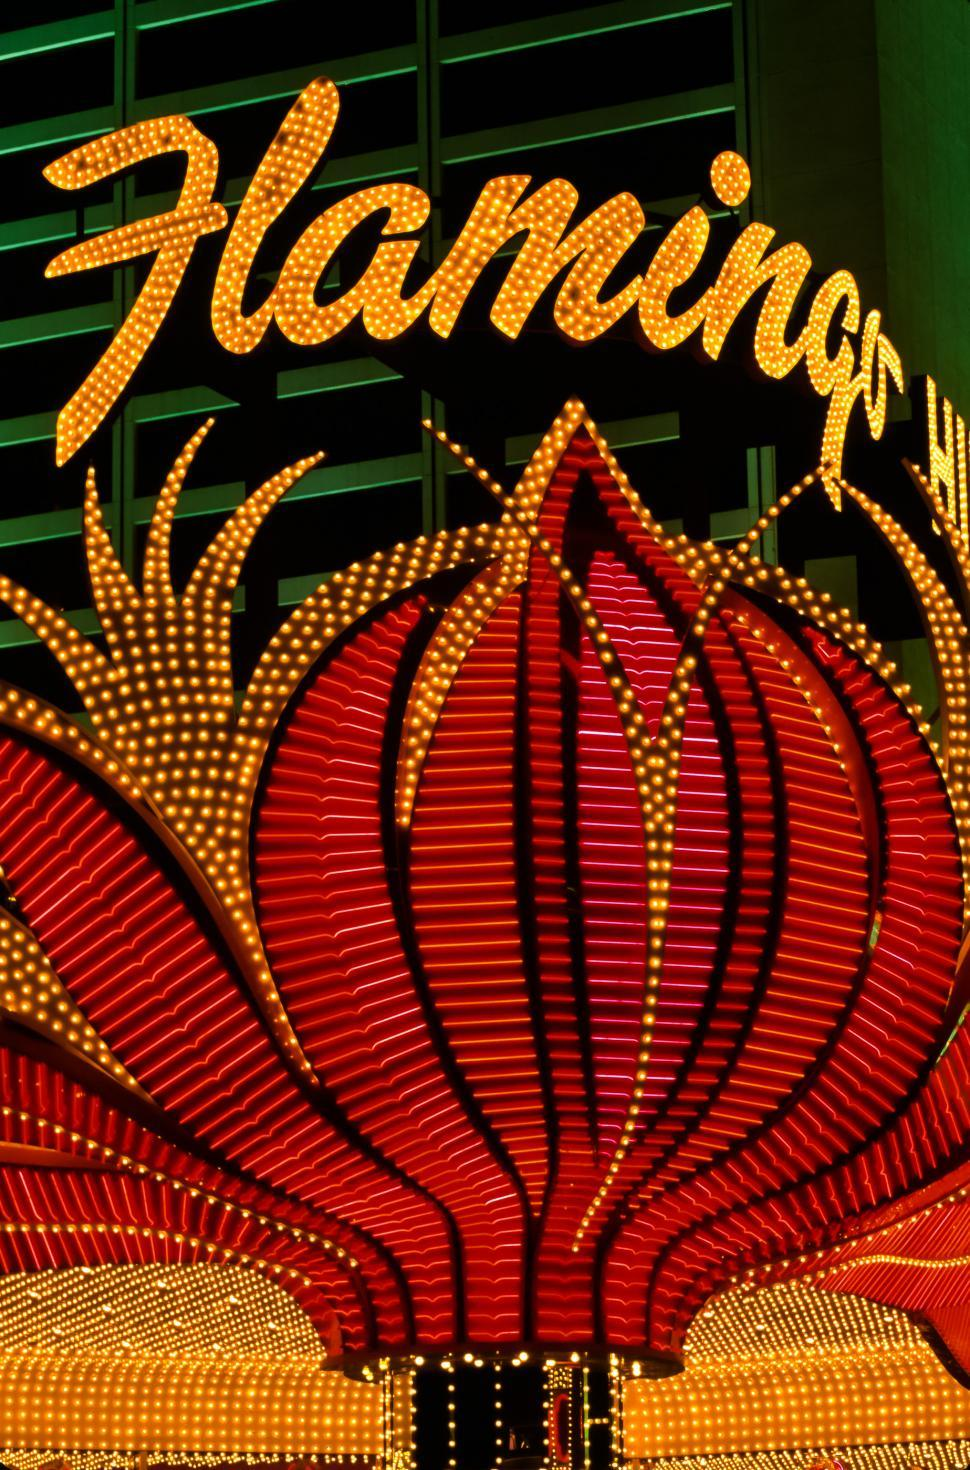 Download Free Stock Photo of Neon Flamingo Hotel Sign